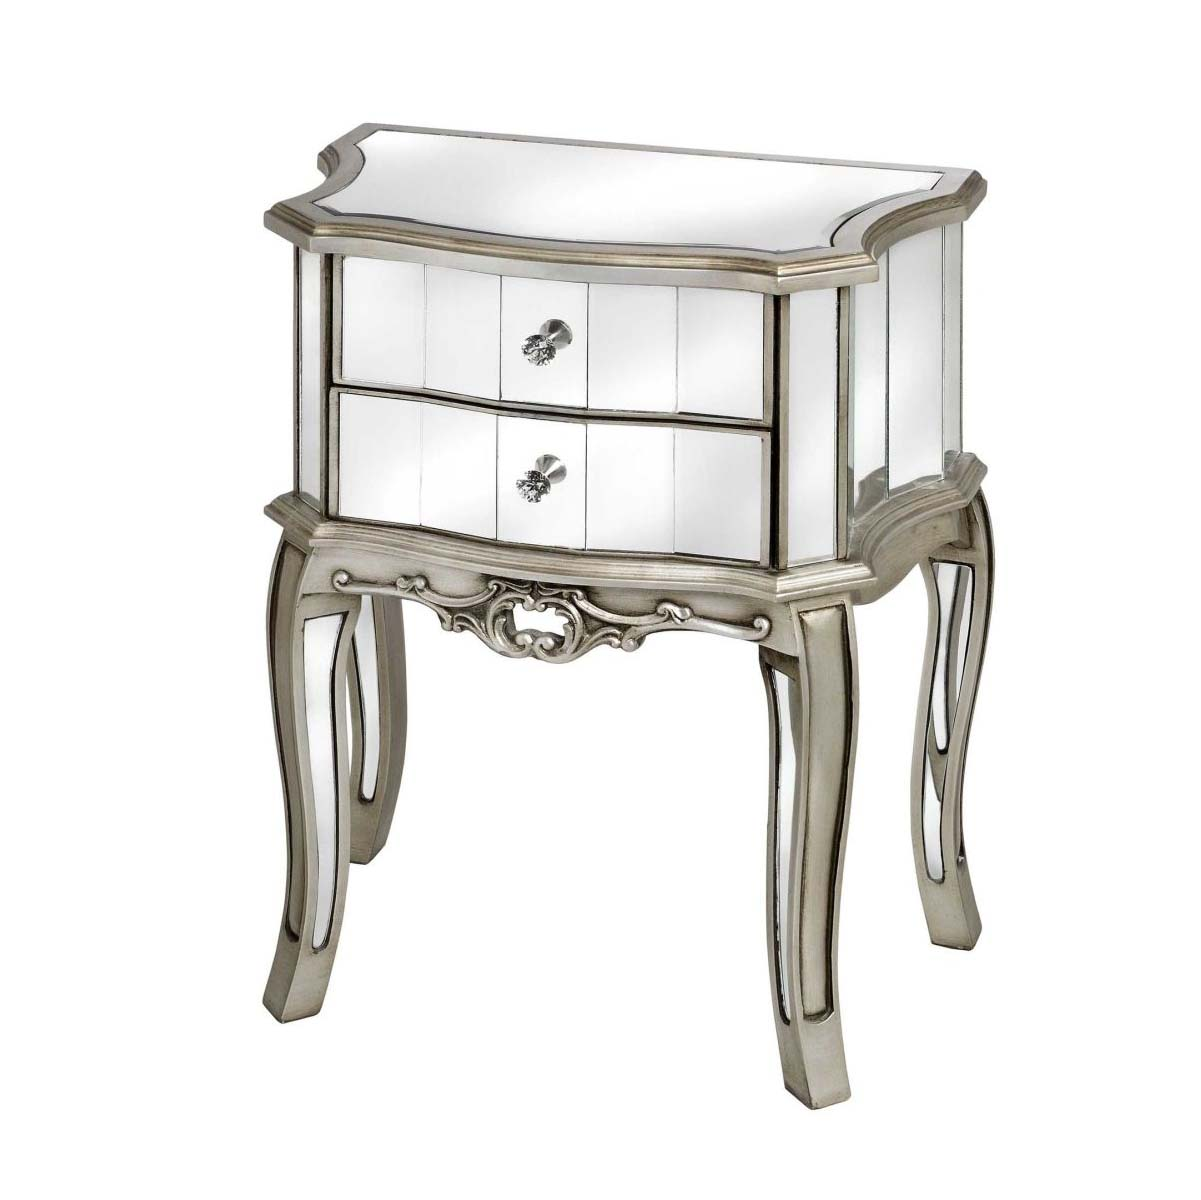 2 Drawer Silver Mirrored Bedside Table